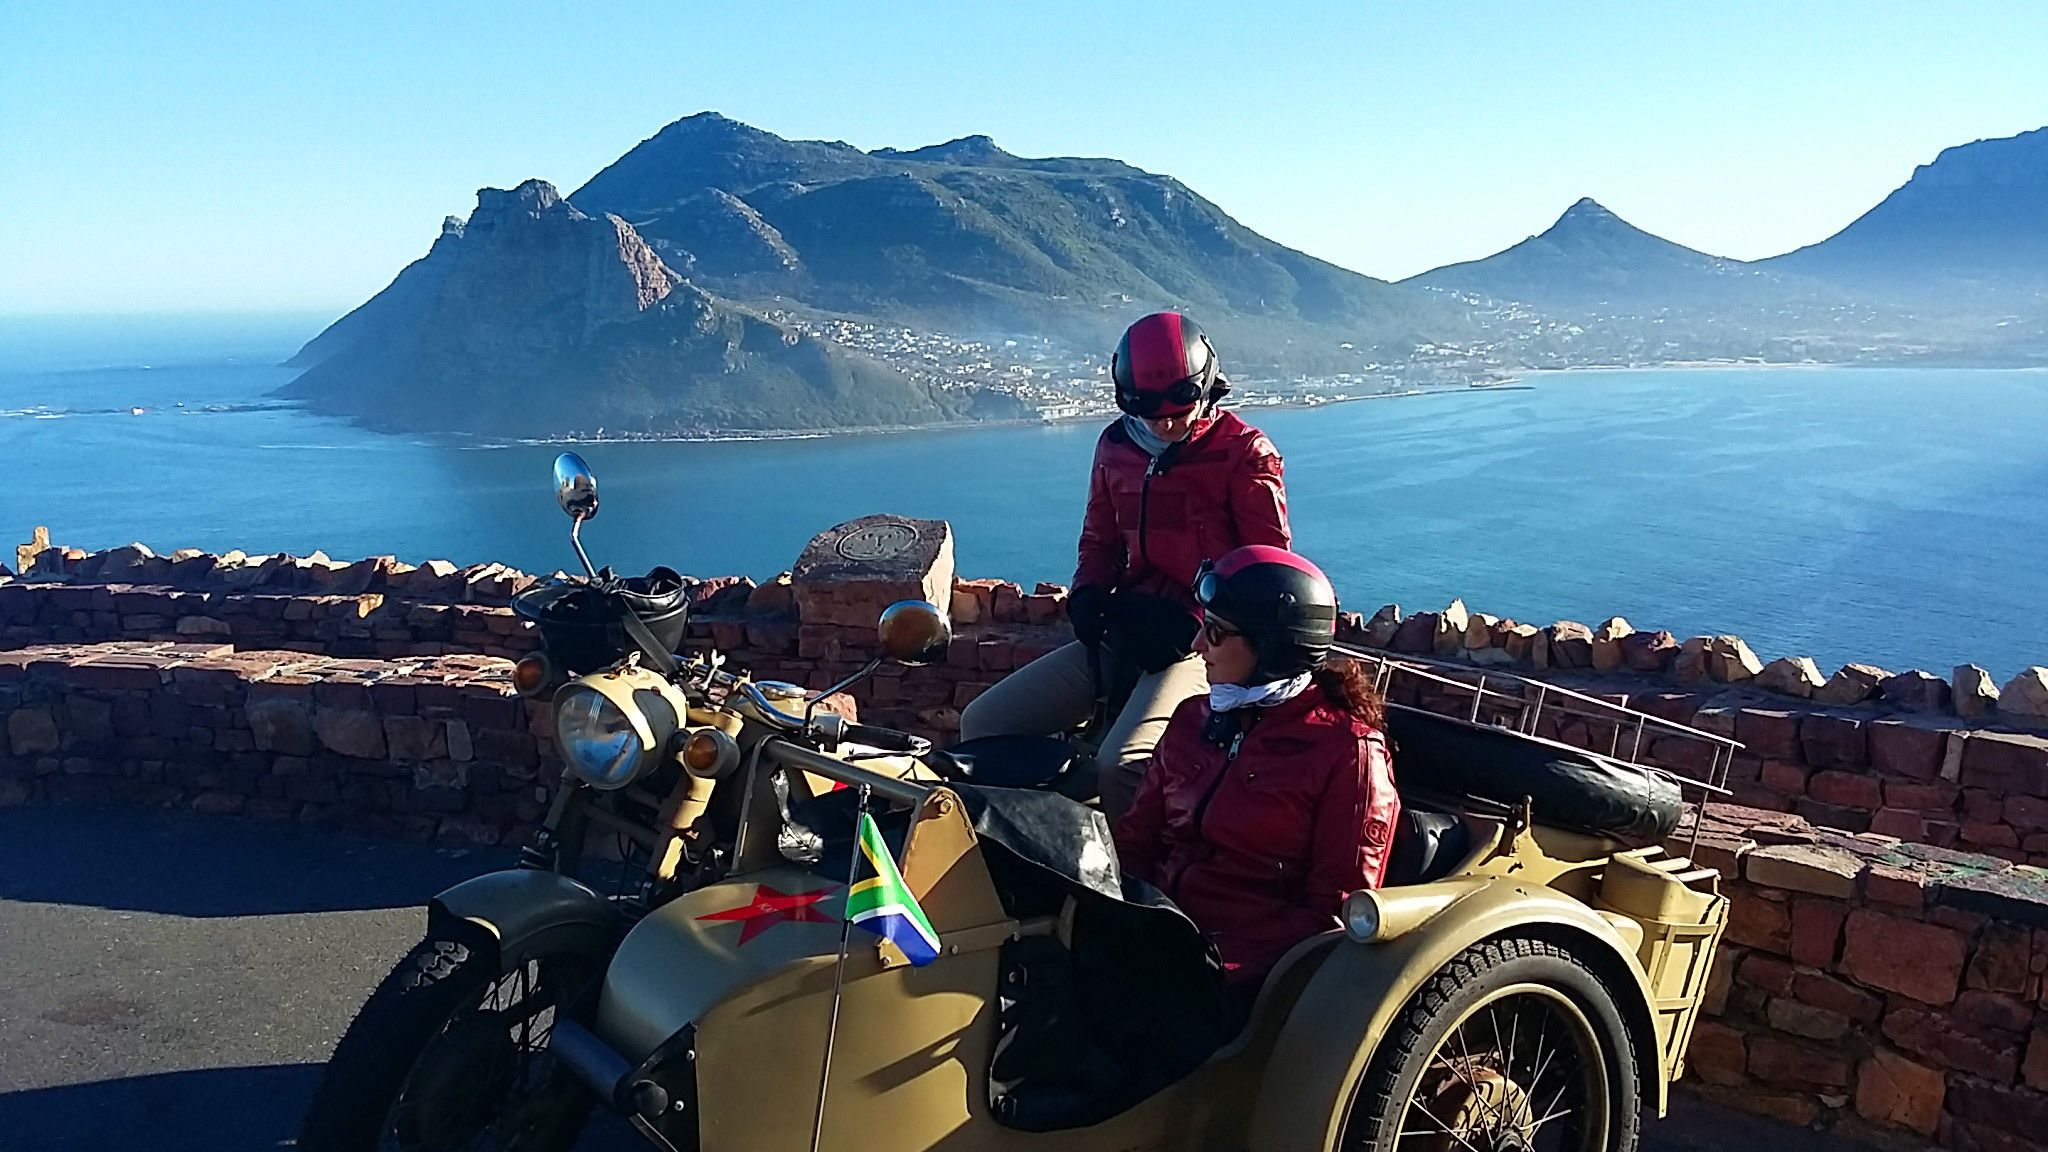 Motorcycle and side car on the coast of Cape Town